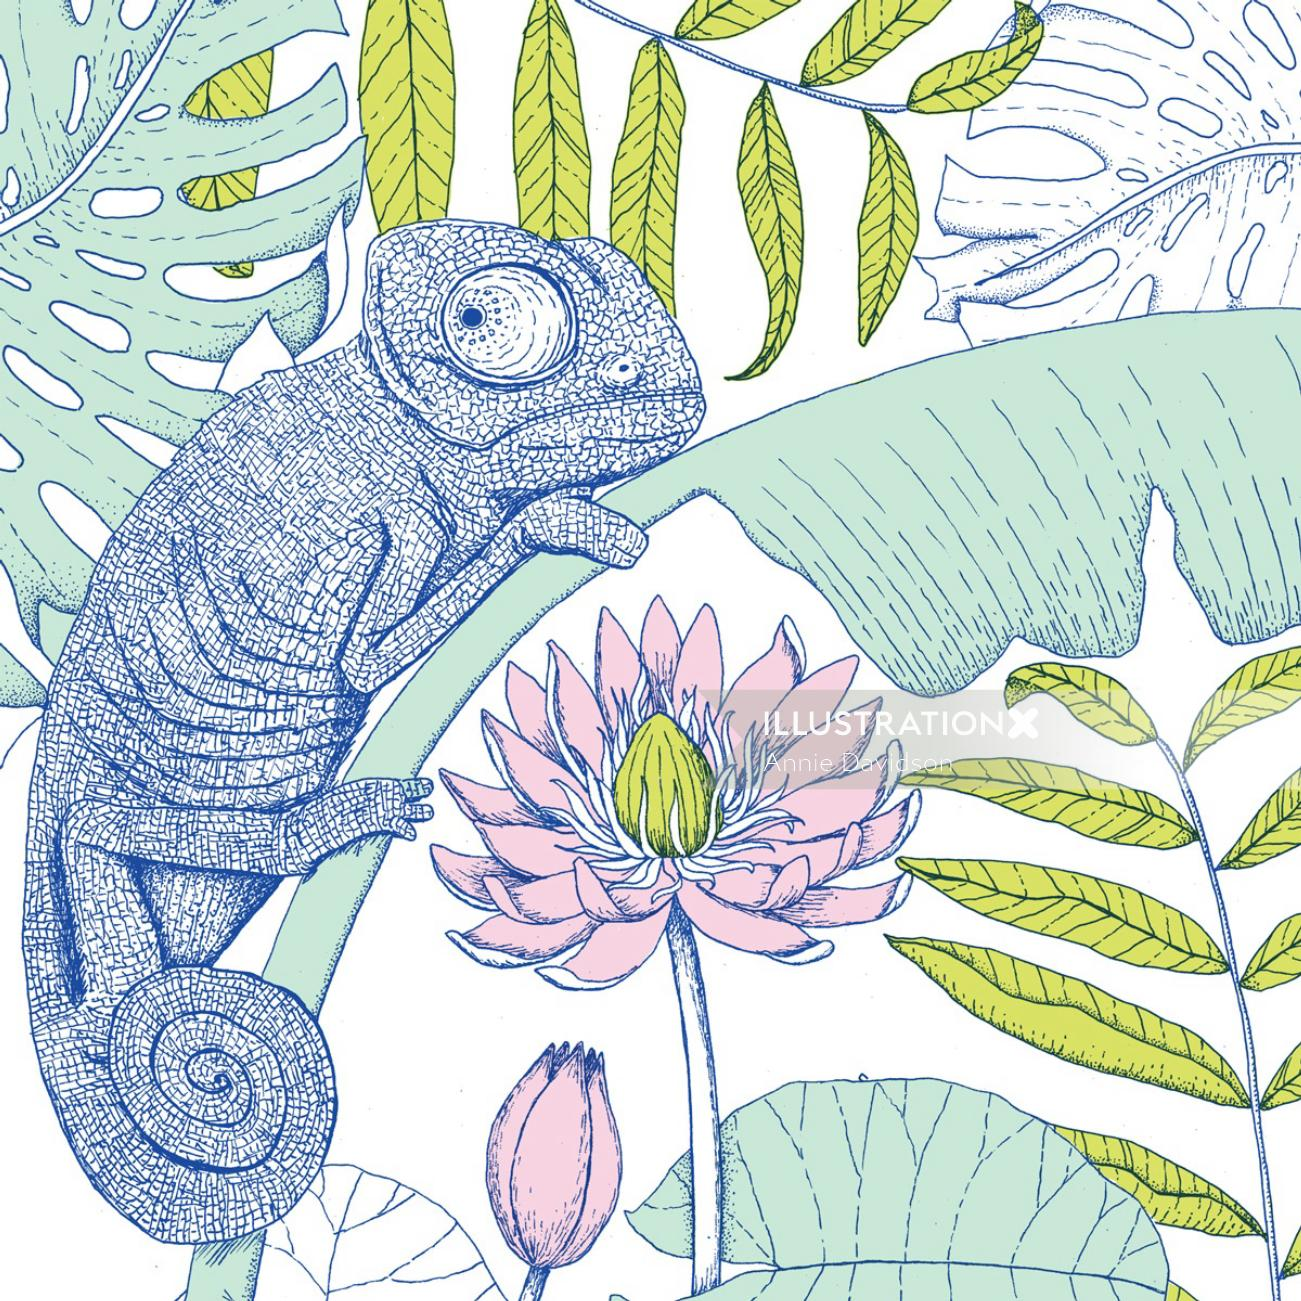 Watercolor painting of chameleon